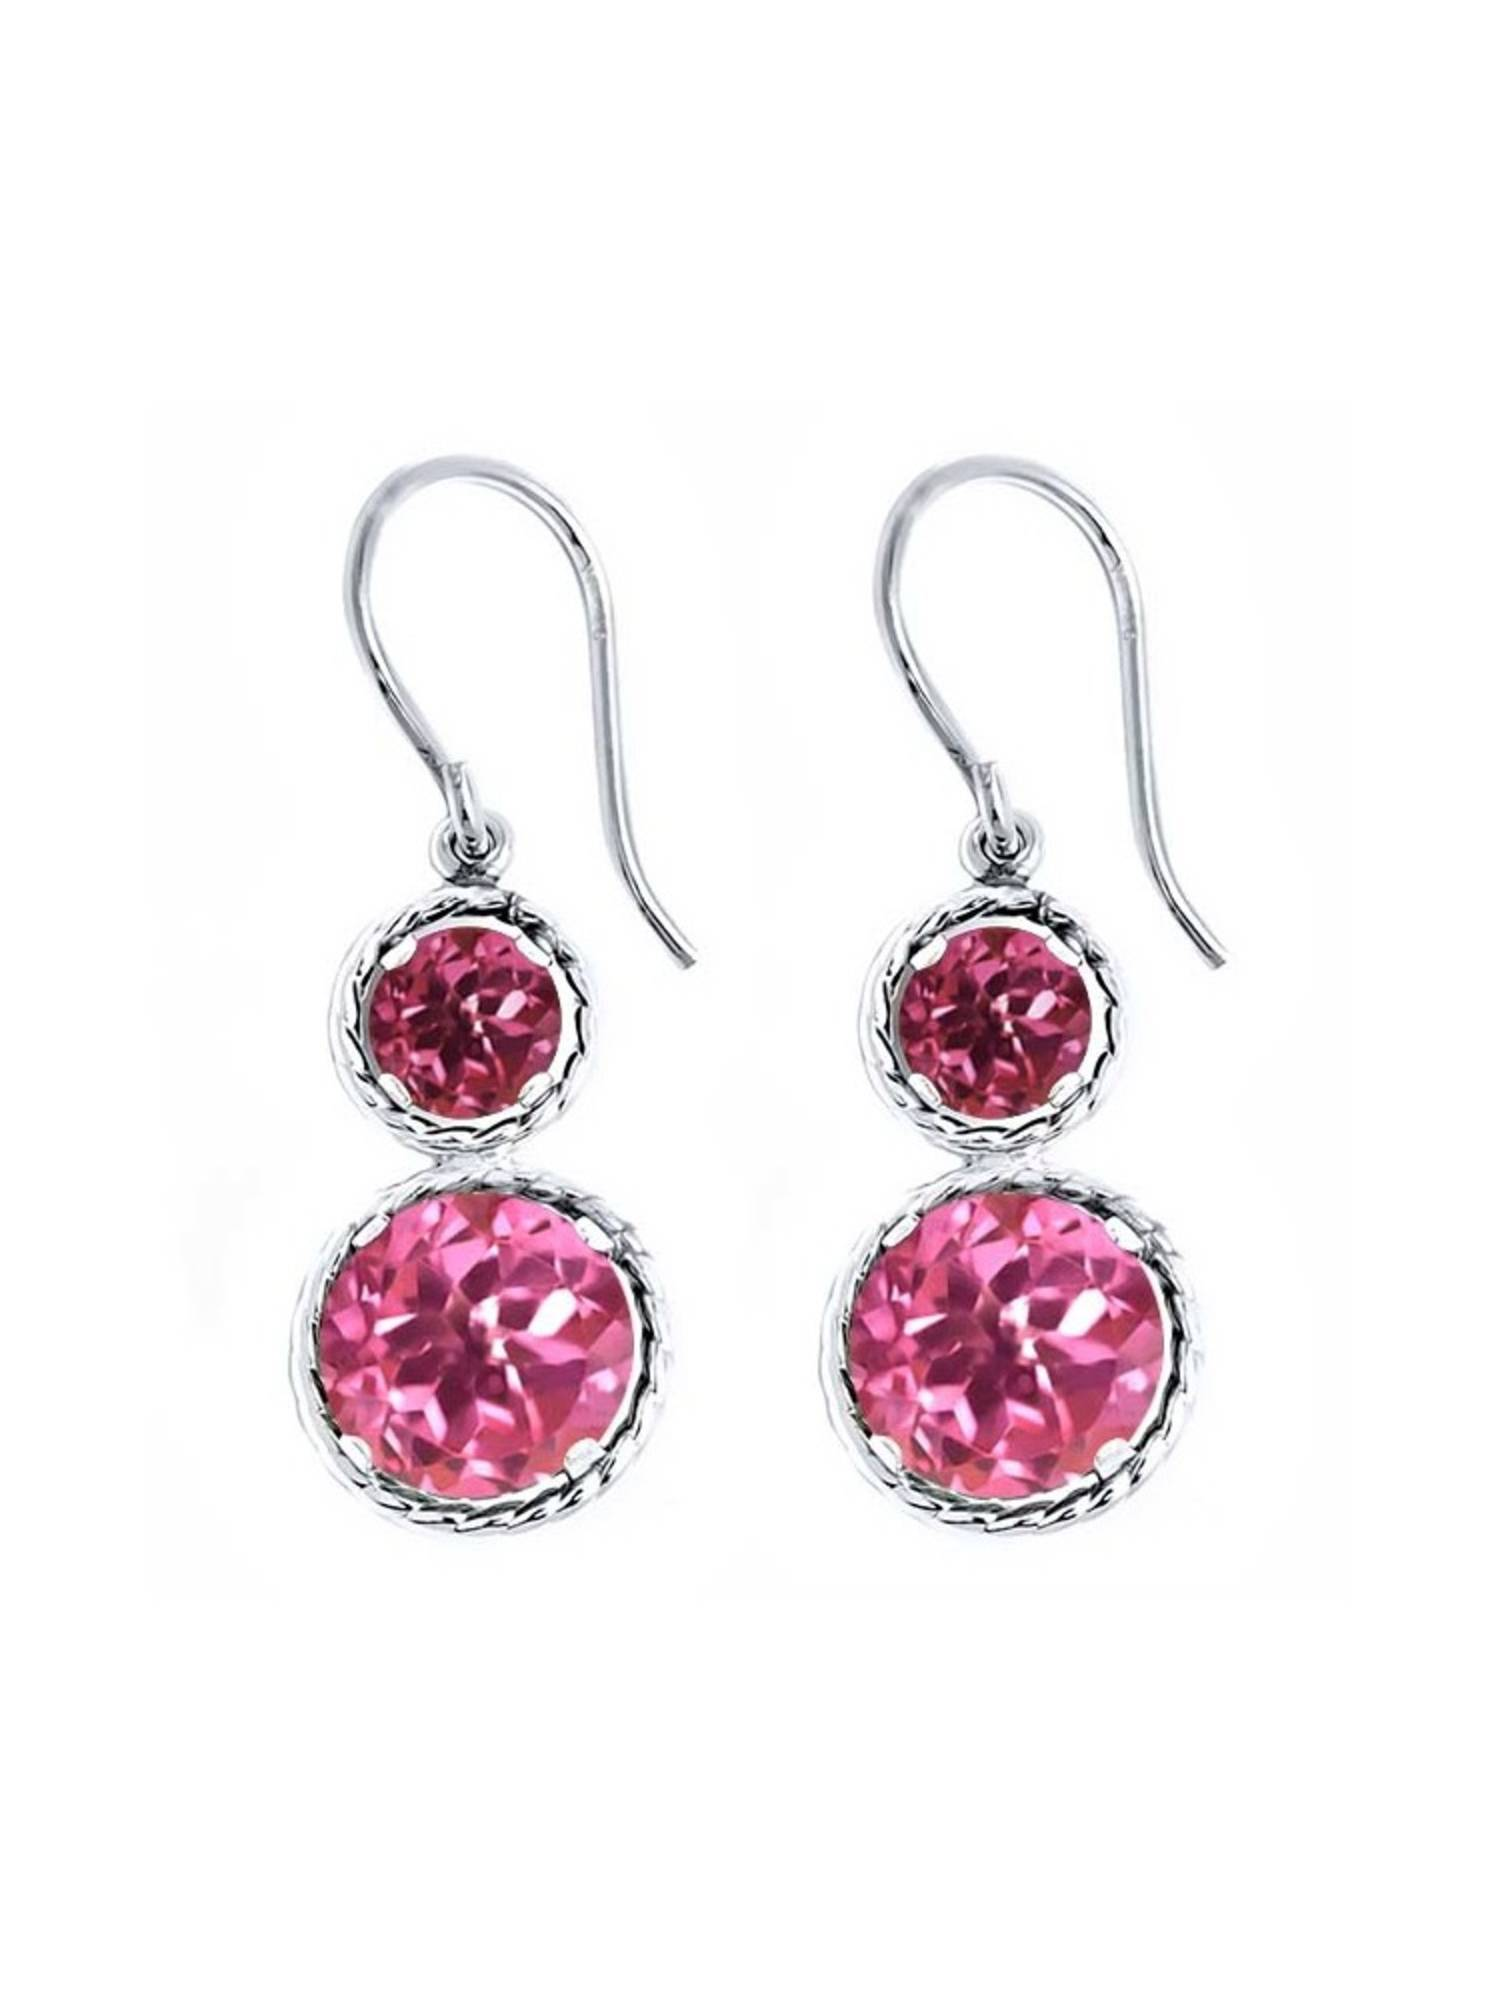 5.70 Ct Round Pink Mystic Topaz Pink Tourmaline 925 Sterling Silver Earrings by